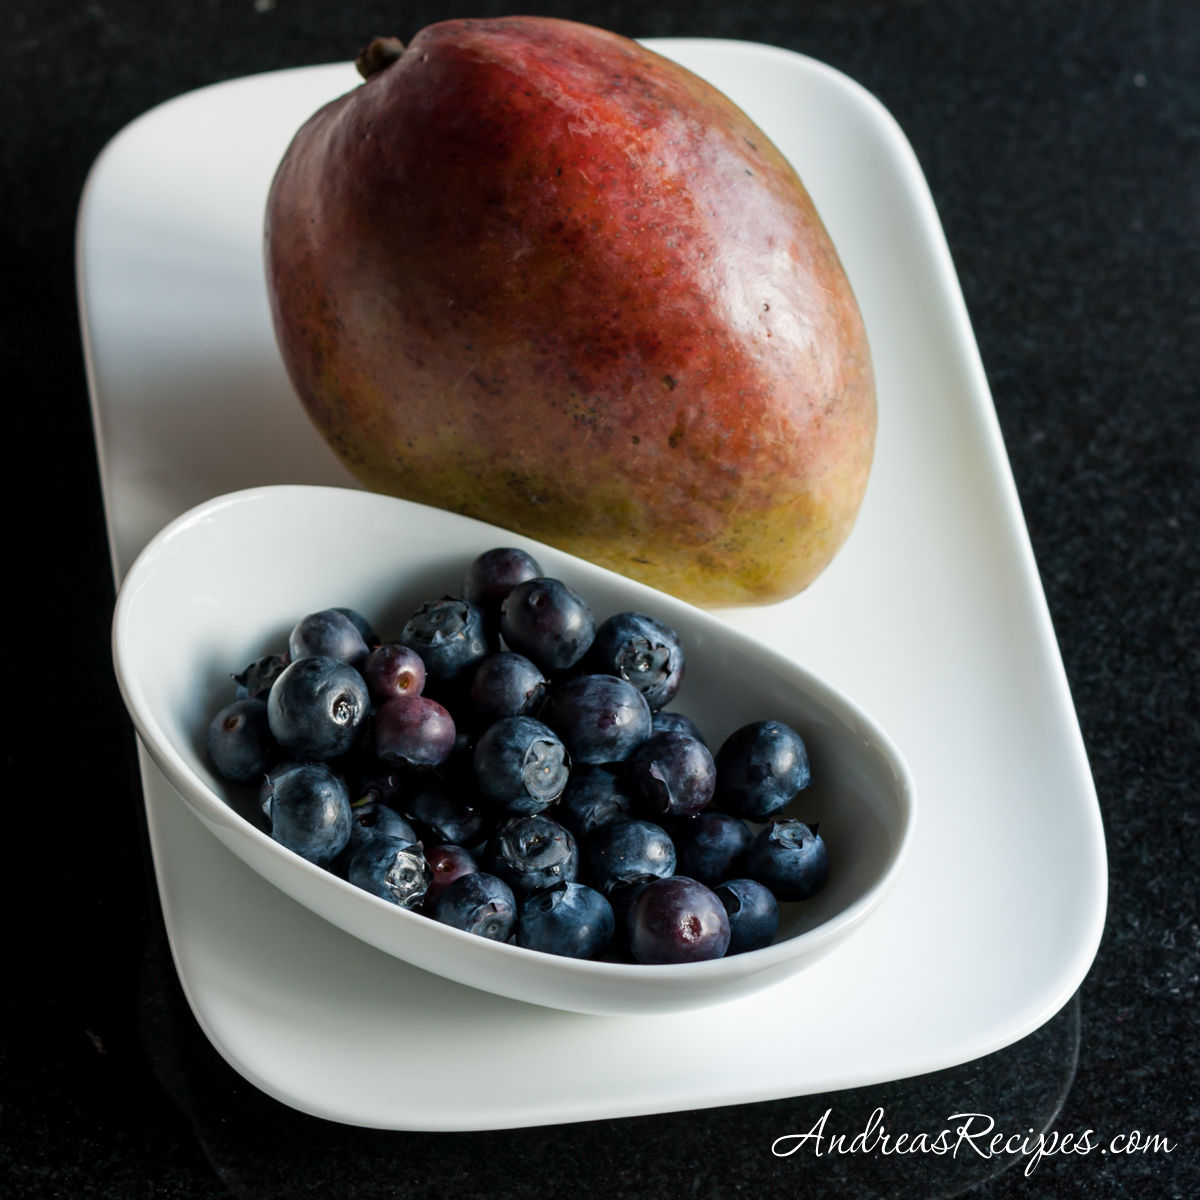 Mango and blueberries - Andrea Meyers